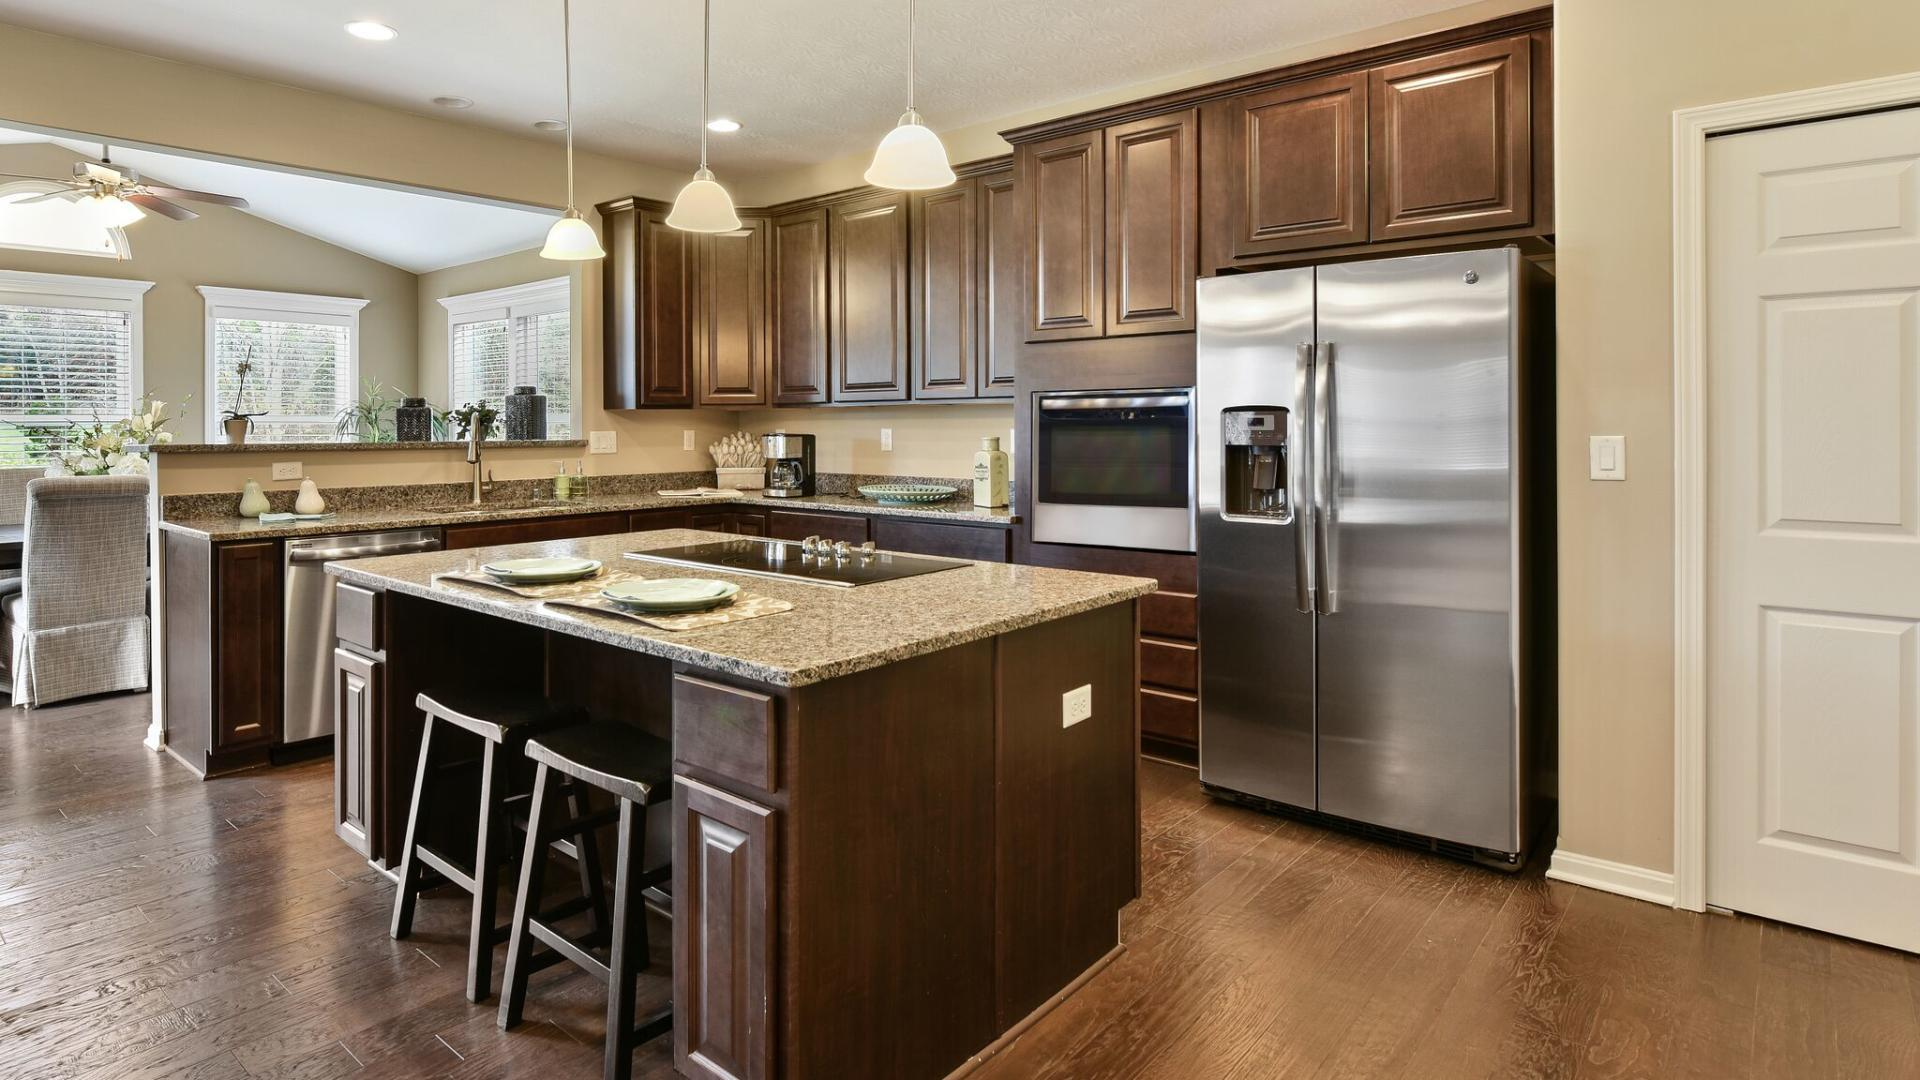 Kitchen featured in the Birmingham By Maronda Homes in Columbus, OH